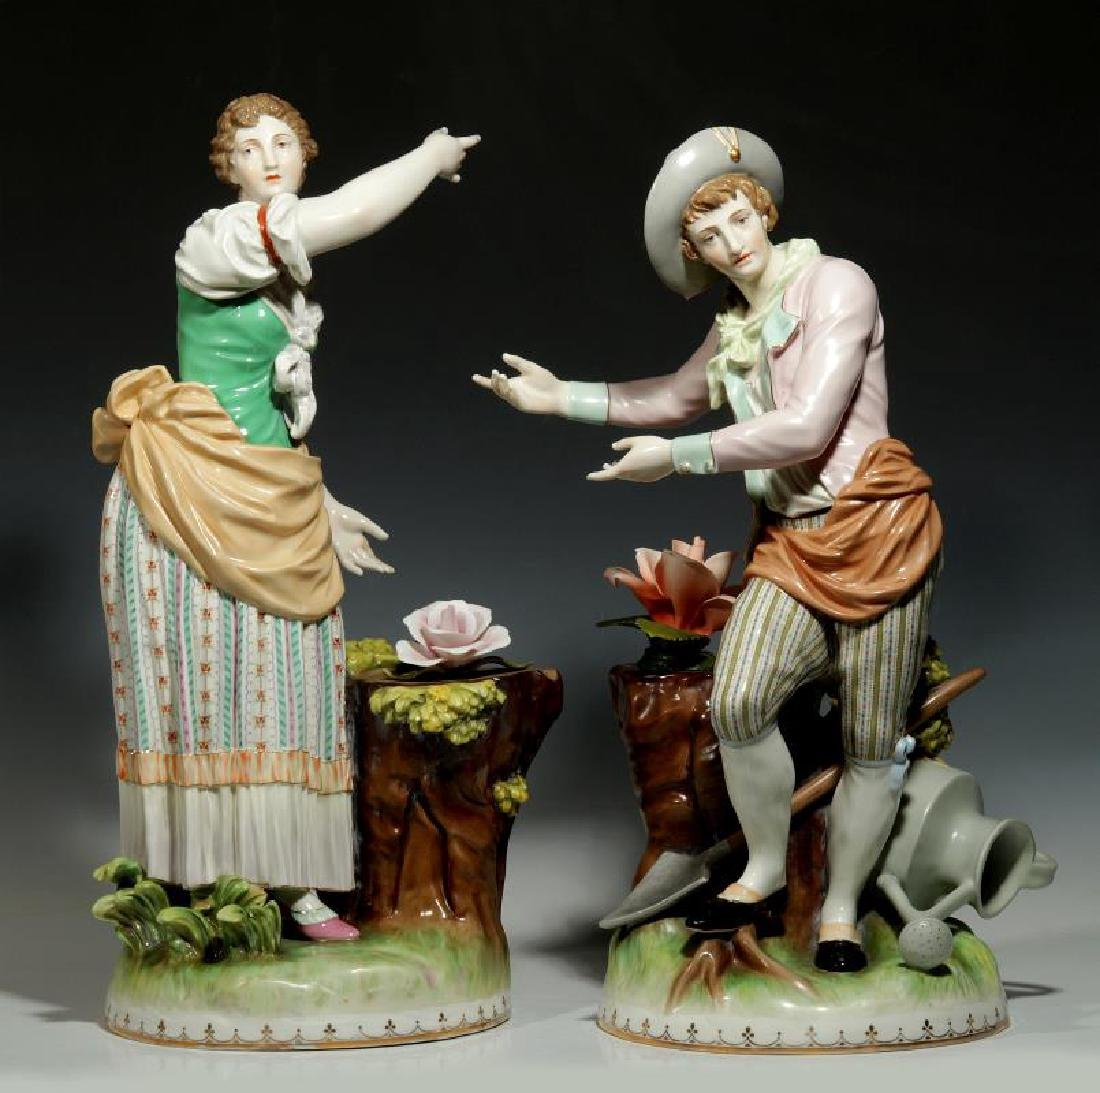 EARLY 20TH C. ERNST WAHLISS PORCELAIN FIGURES 21 INCHES